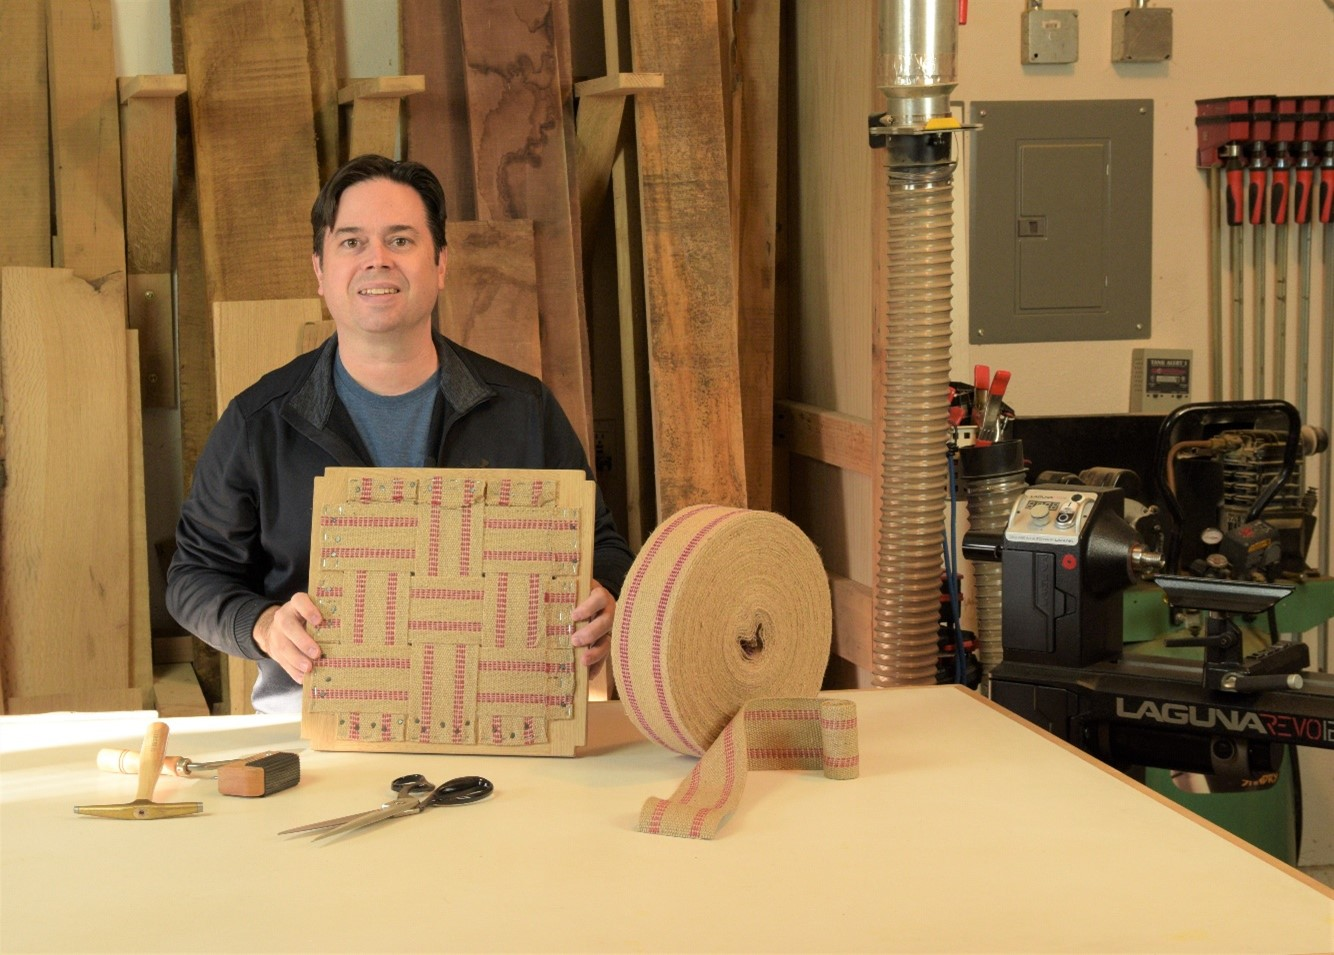 Making a seat frame - bandsaw woodworking